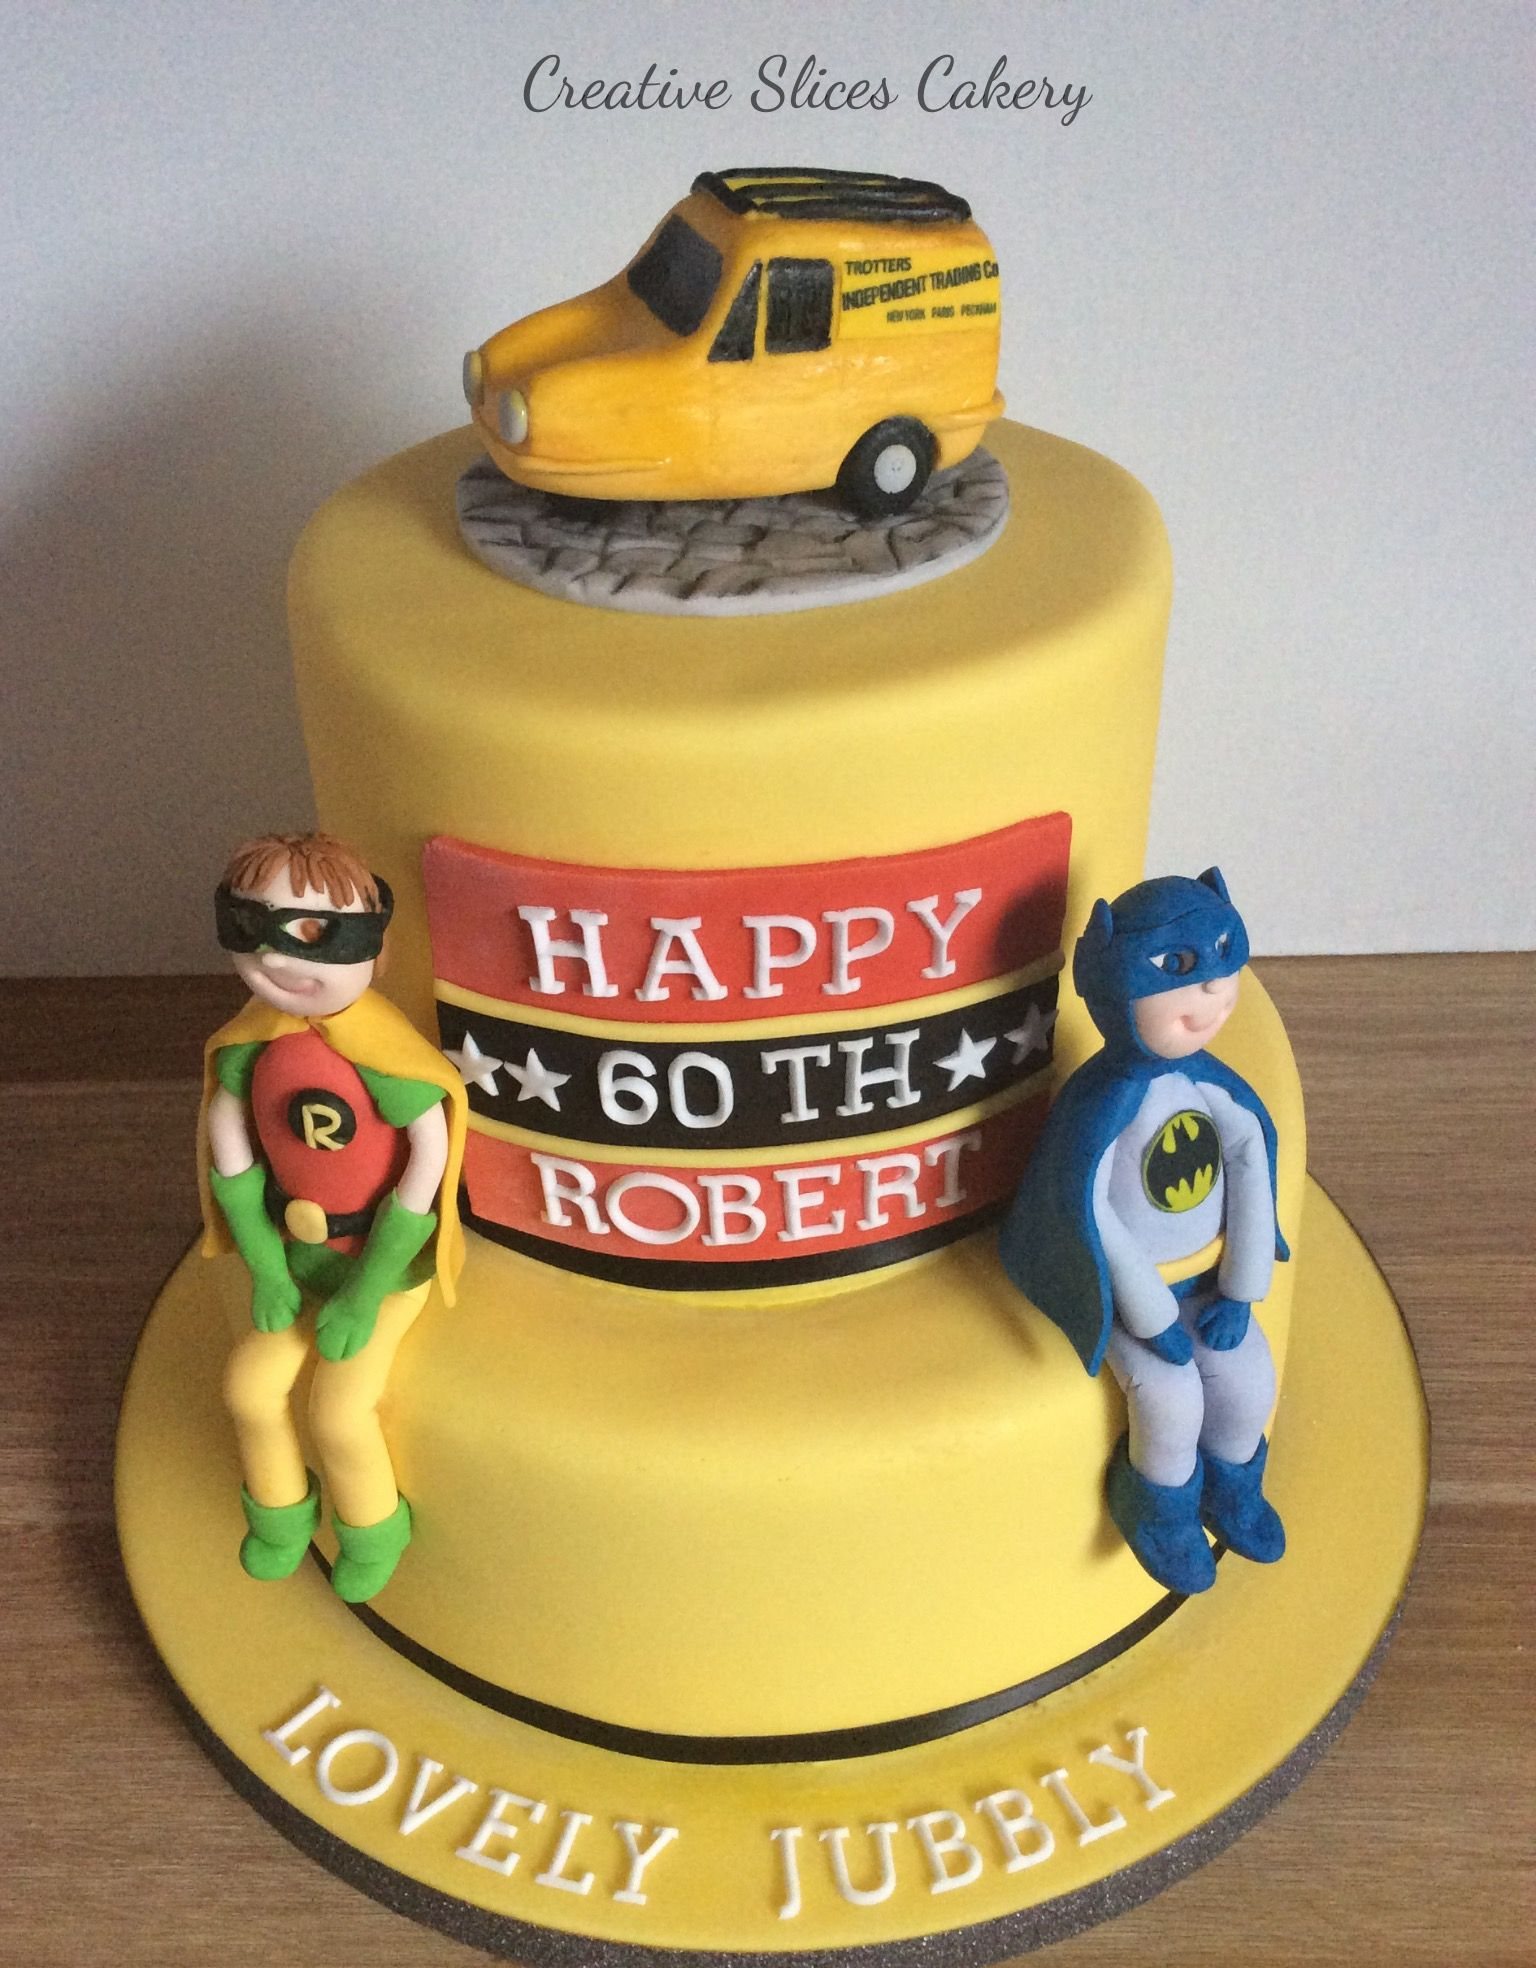 Lovely Jubbly Only Fools And Horses Cake X Horse Birthday Cake Dad Birthday Cakes 60th Birthday Cakes